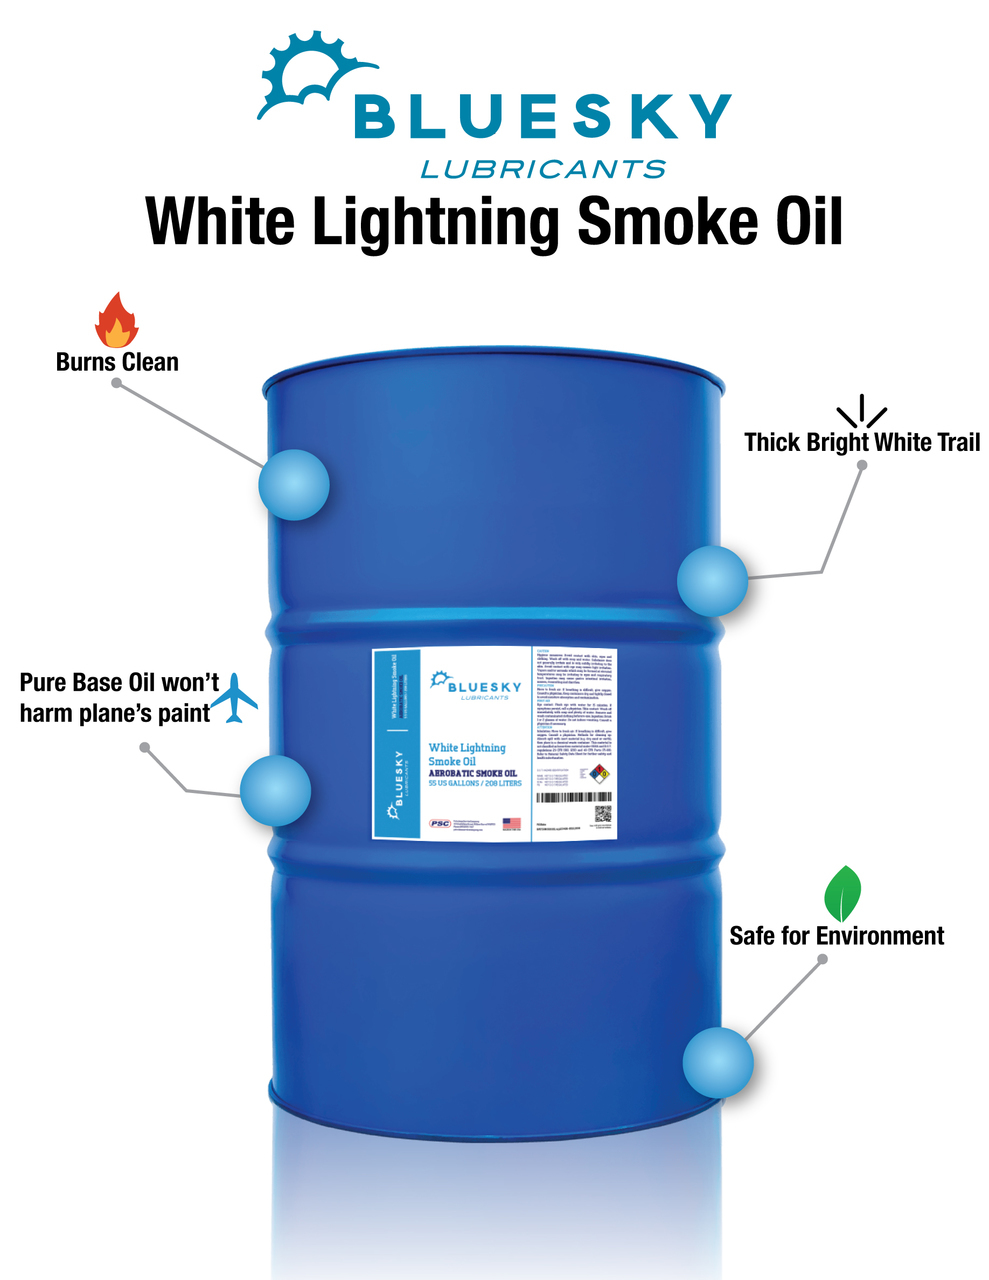 Bluesky Lubricants White Lightning Smoke Oil